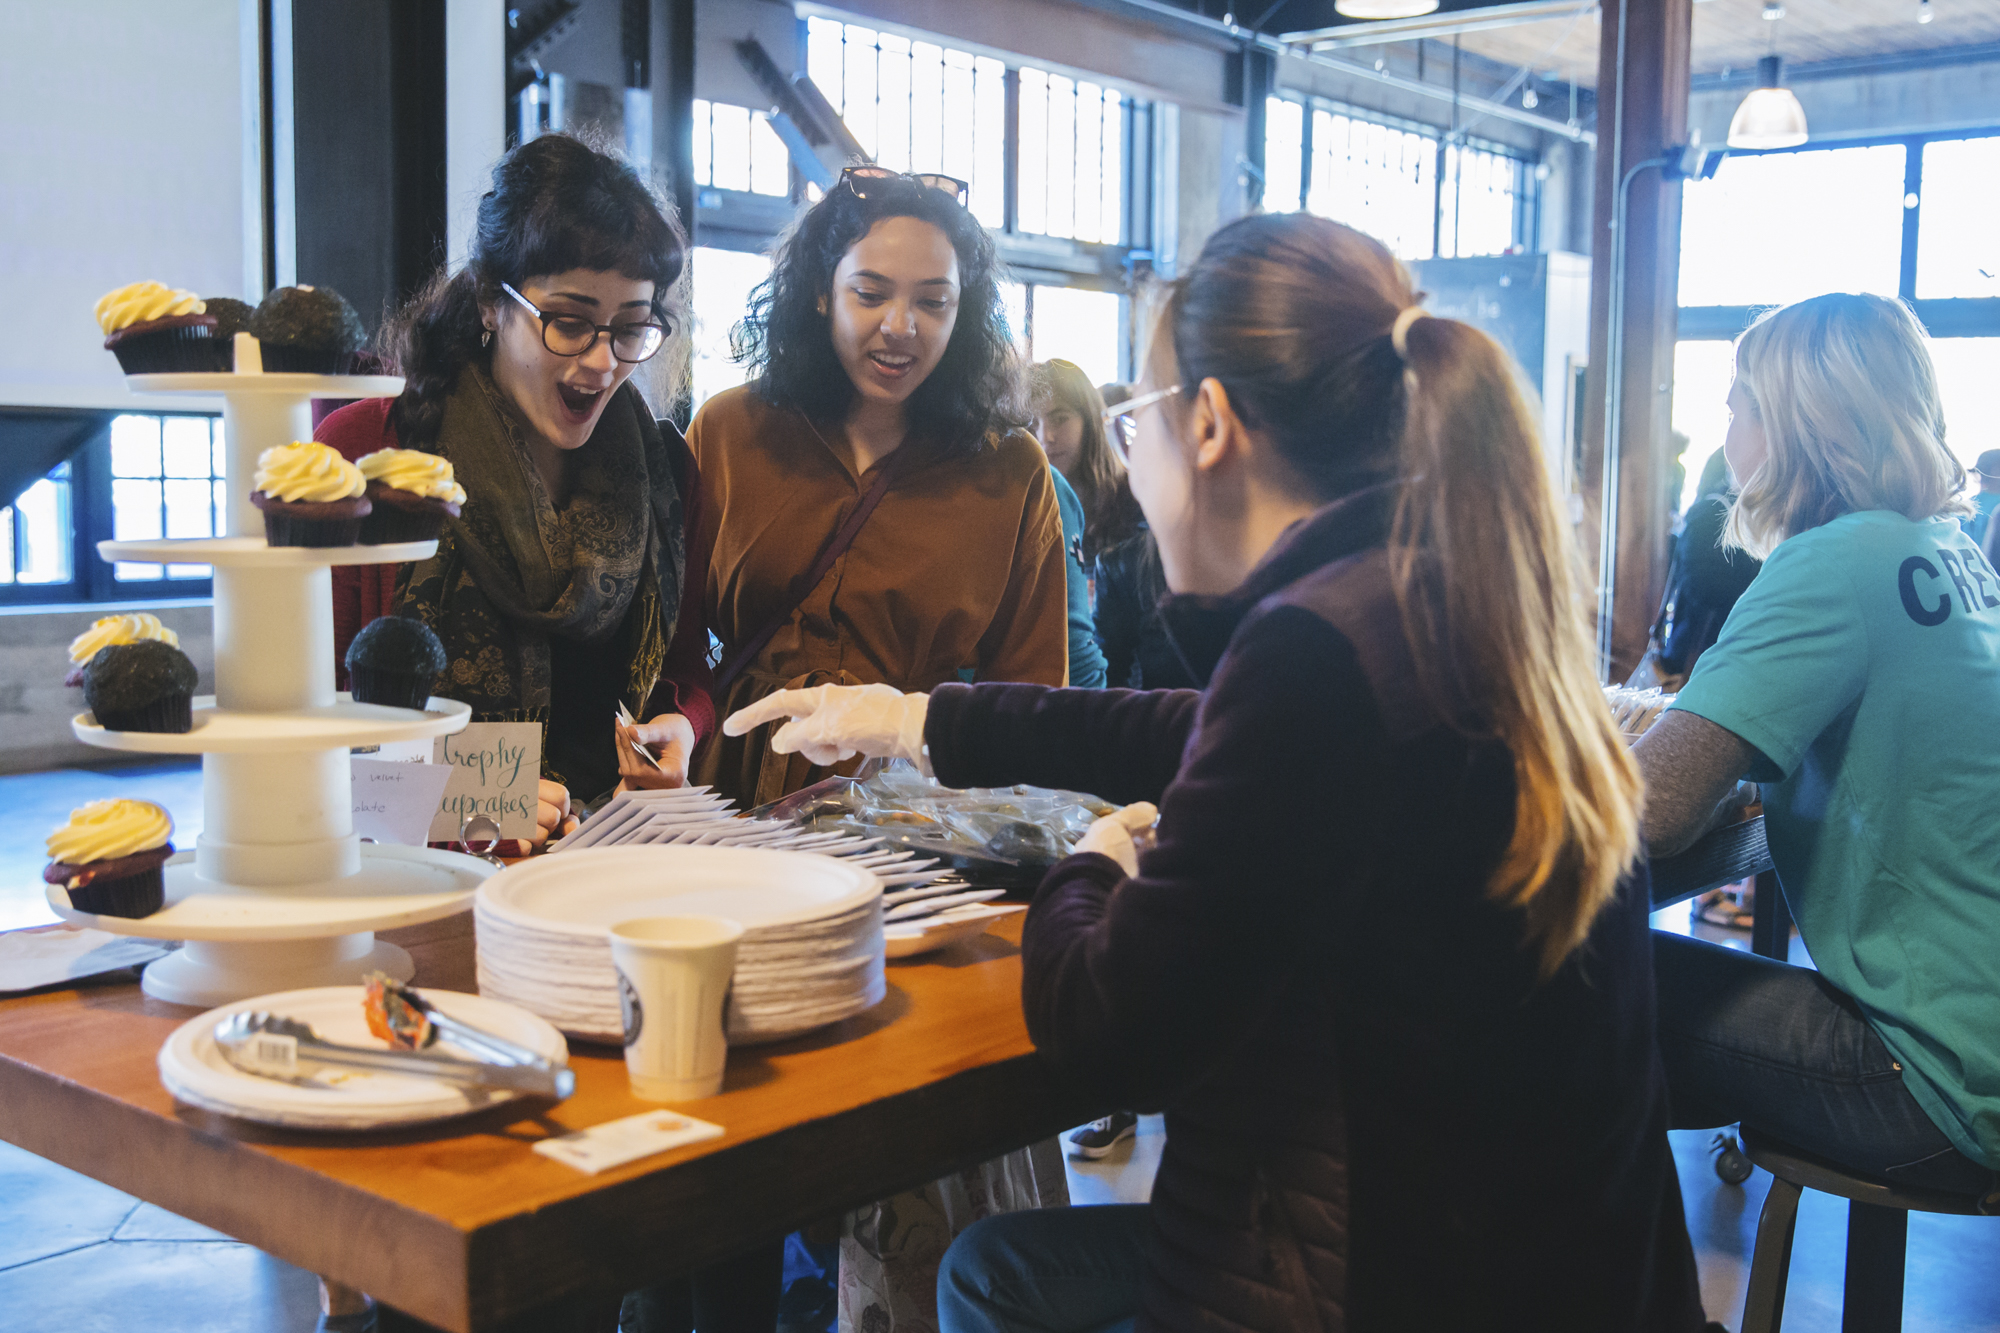 <p>In its sixth year,the sold out Depressed Cake Shop event came back in full force at OptimismBrewing in Capitol Hill on Saturday, October 13, 2018. The one-day pop-upbakery sells gray-colored cakes, cookies and other bakery items (all donated bylocal bakers) to raise awareness for and fight the stigma that can often comewith mental-health issues. The goodies are gray on the outside, but colorful onthe inside - to symbolize hope. All proceeds from the pop-up go to NAMISeattle. (Image: Sunita Martini / Seattle Refined){&amp;nbsp;}</p>